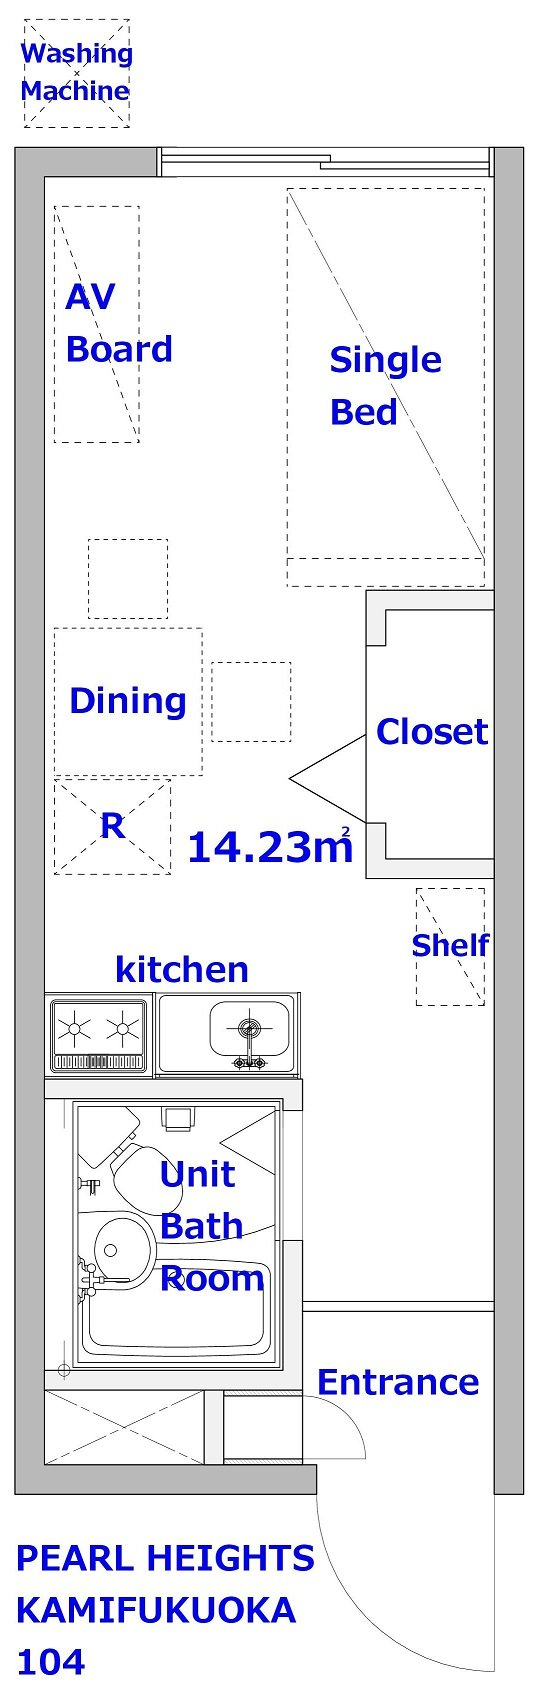 guesthouse sharehouse PEARL HEIGHTS KAMI-FUKUOKA floorplan1